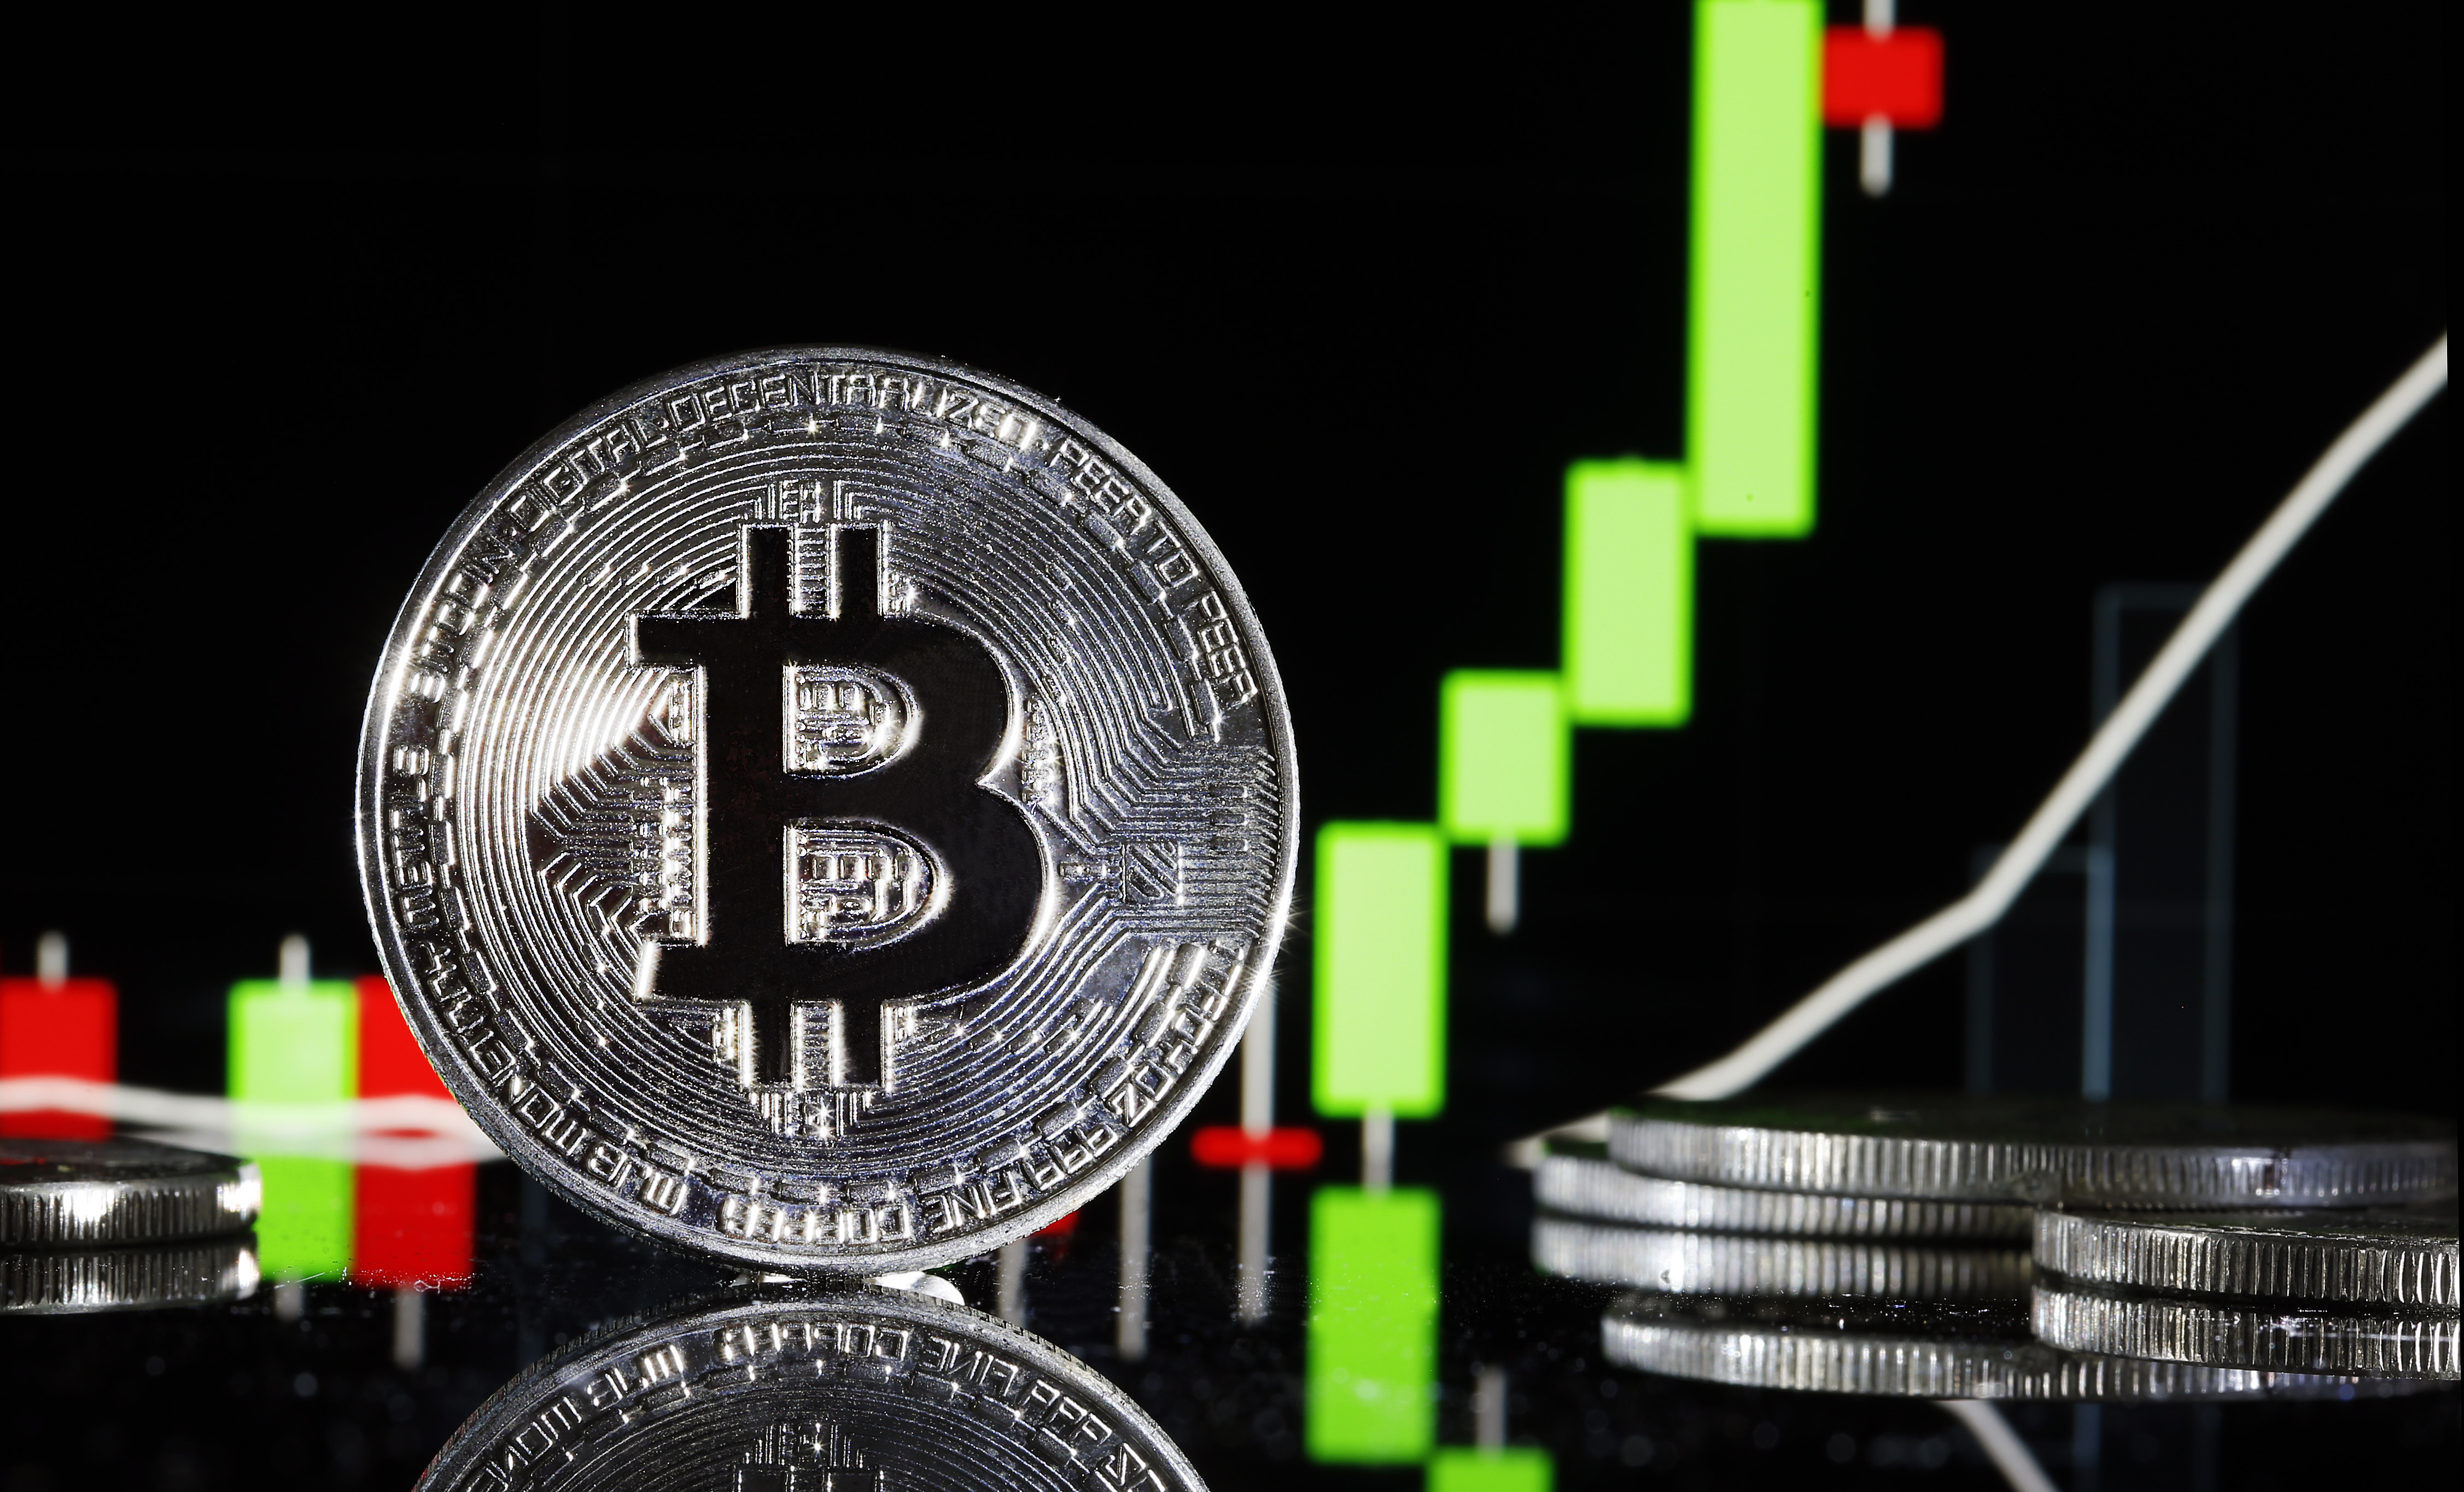 Bitcoin has boomed as investors look to make money